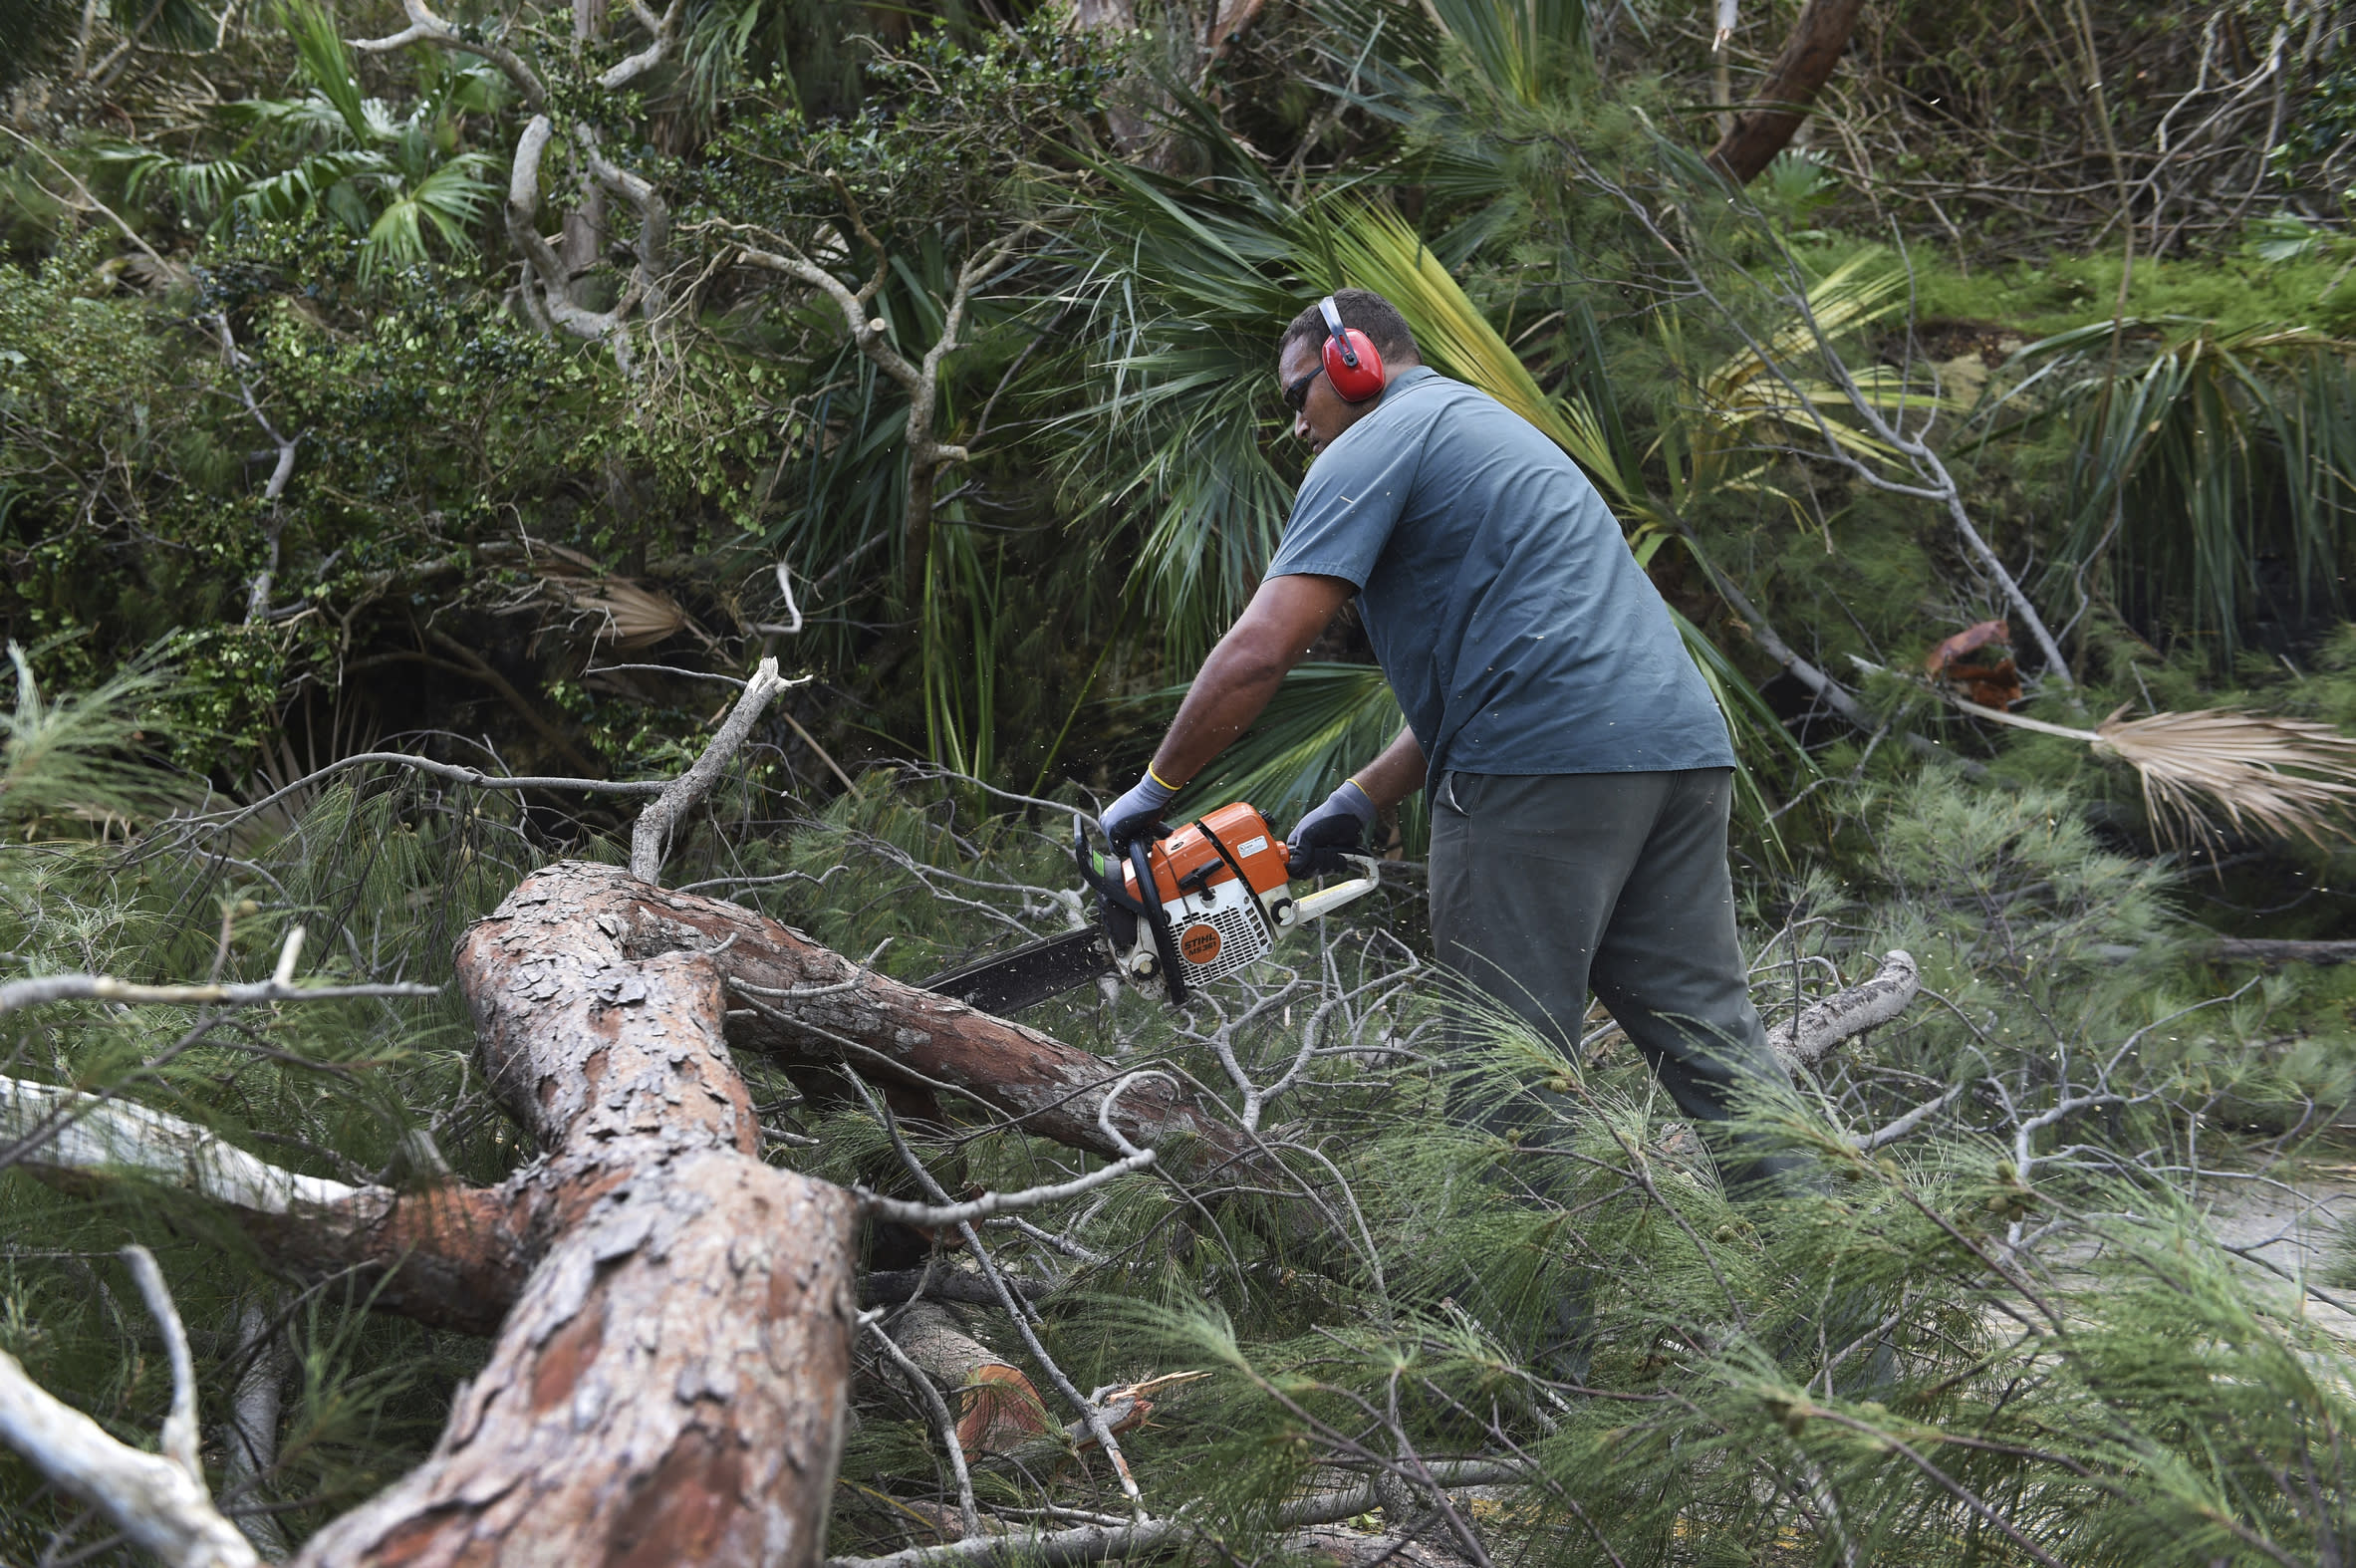 A man uses a powered saw to cut away a felled tree blocking Harrington Sound Road in the aftermath of Hurricane Humberto, in the Smiths parish of Bermuda, Thursday, Sept. 19, 2019. Humberto blew off rooftops, toppled trees and knocked out power but officials said Thursday that the Category 3 storm caused no reported deaths. (AP Photo/Akil J. Simmons)